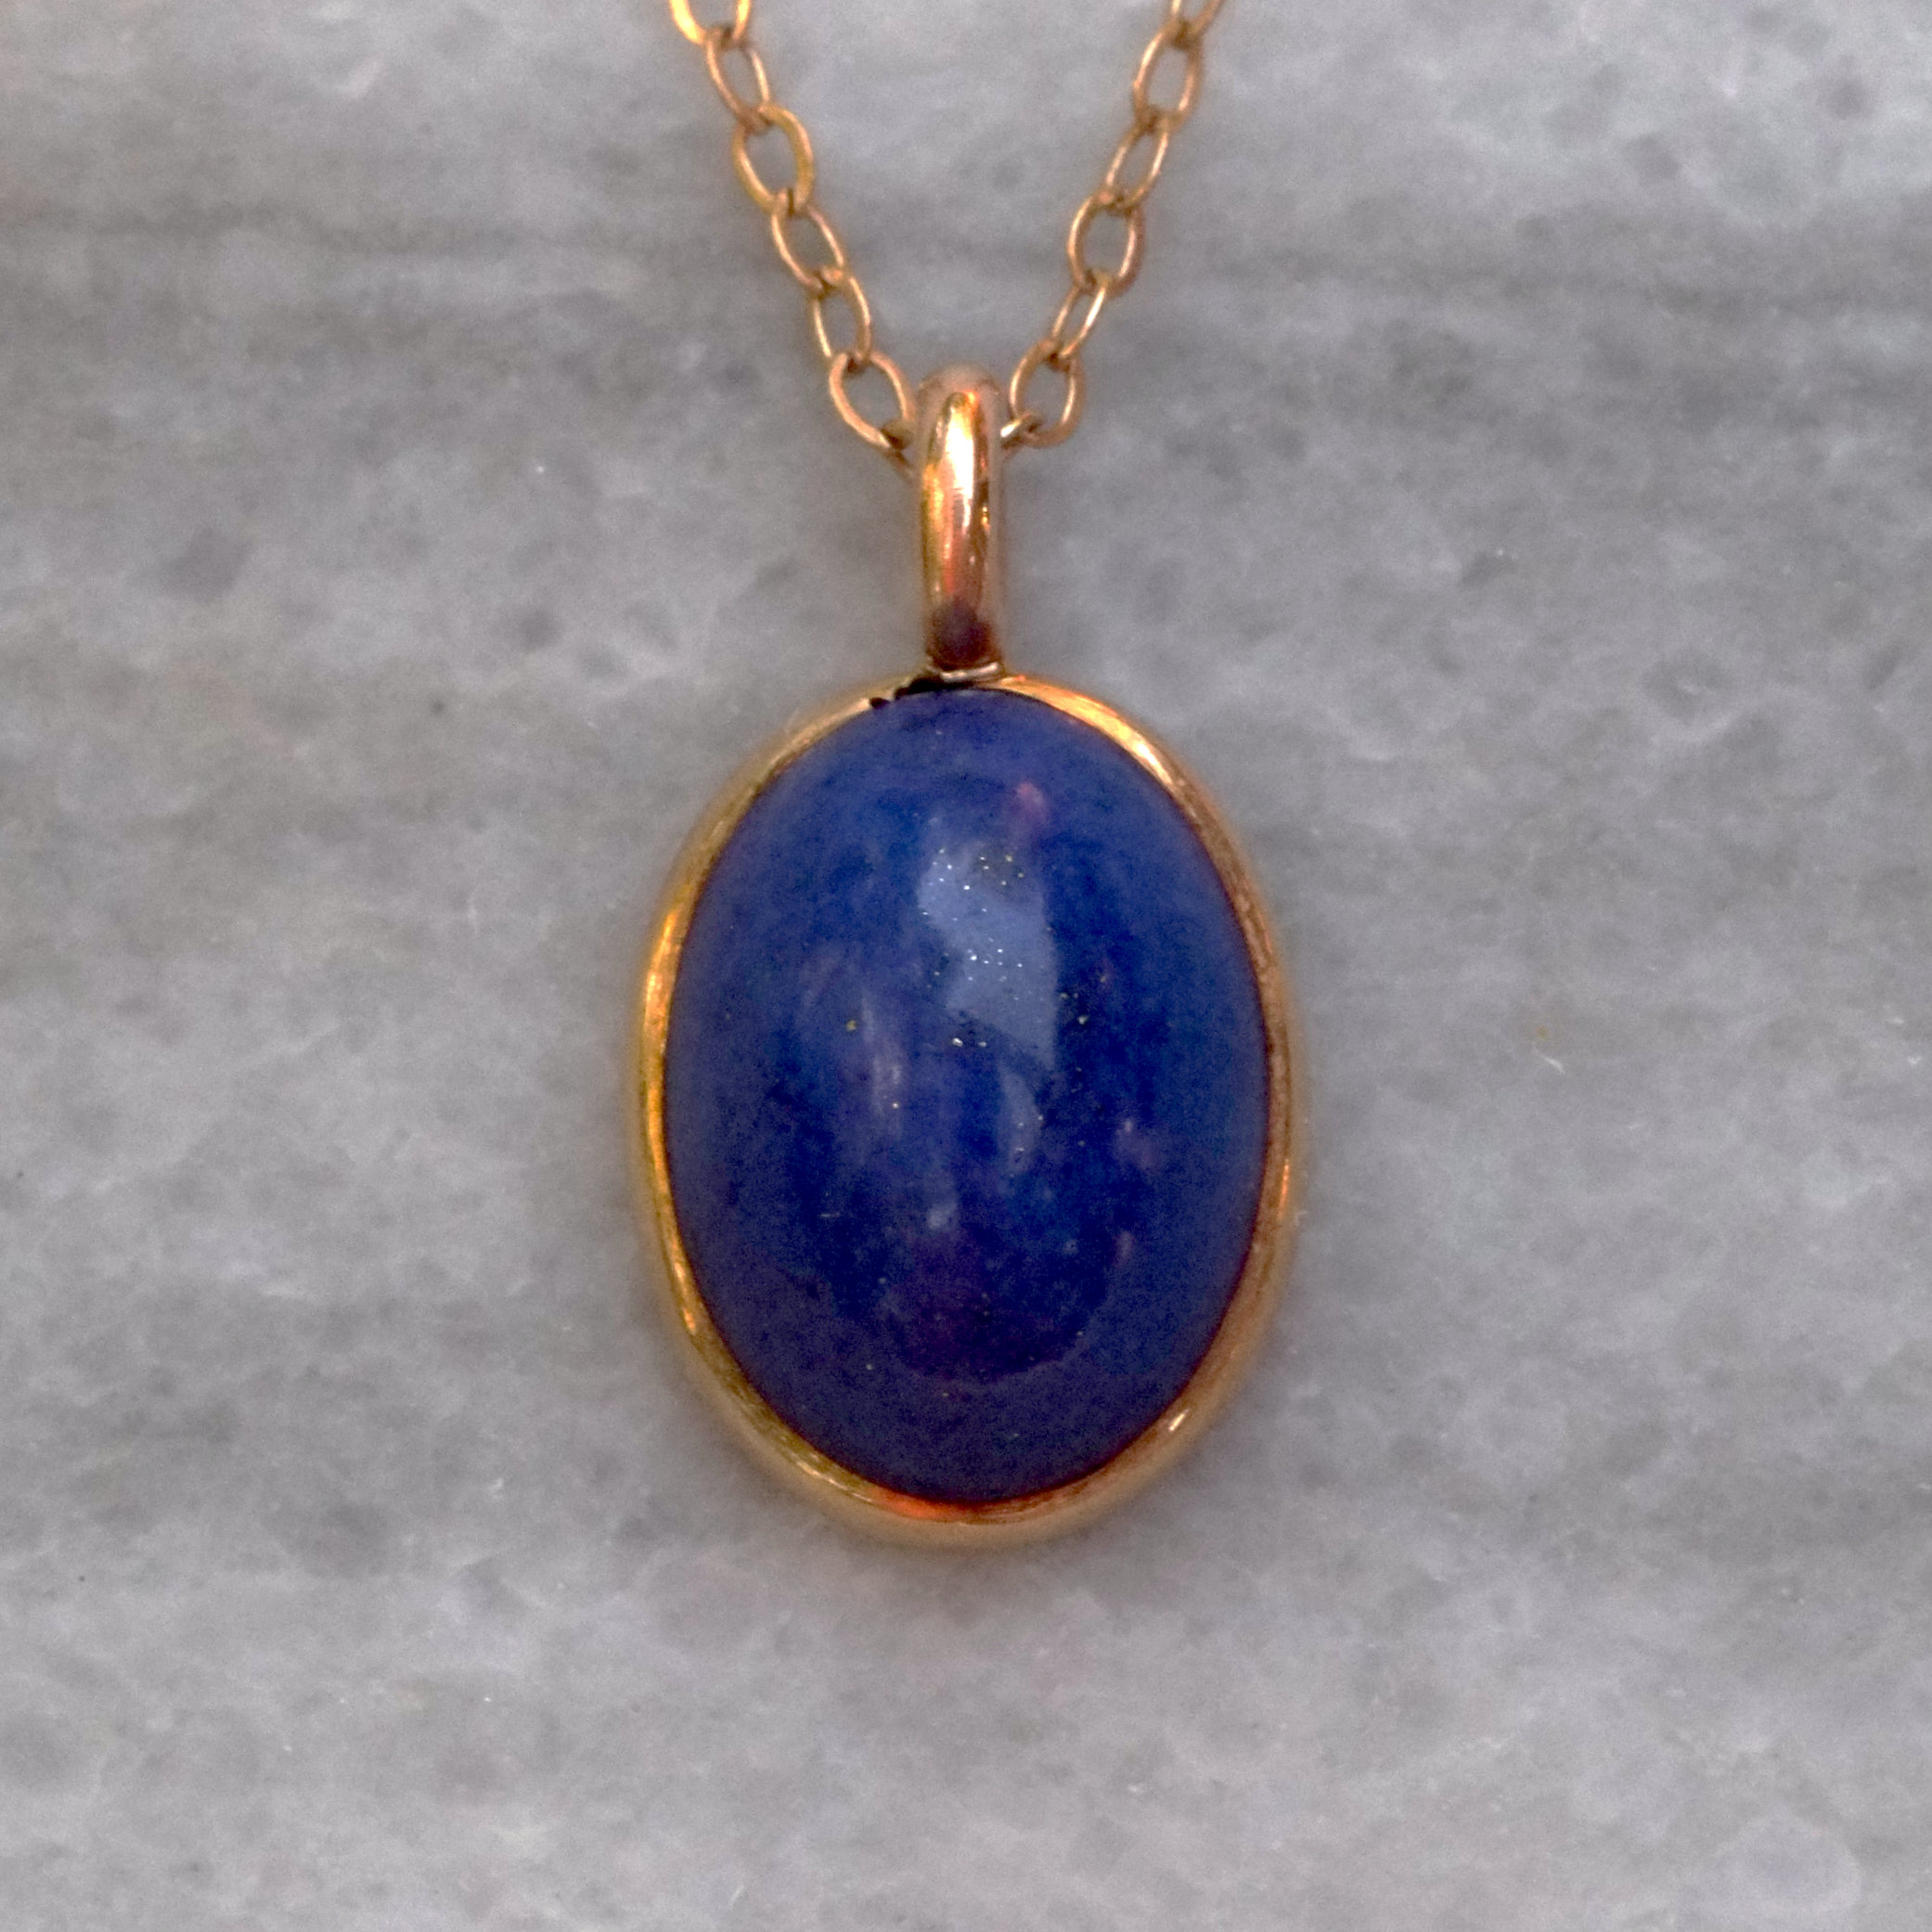 Antique Lapis Oval Pendant